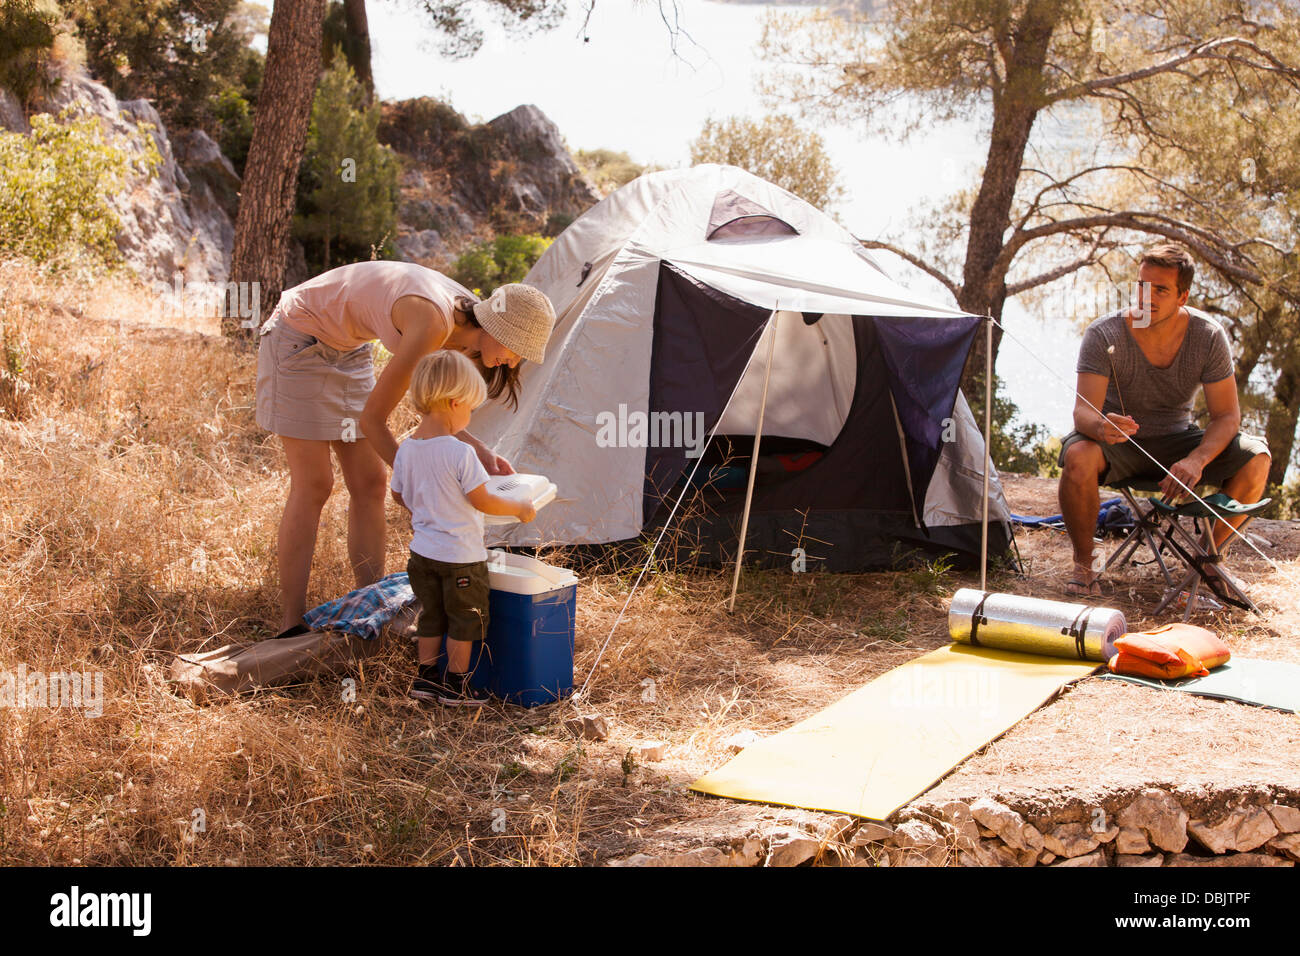 Croatia, Dalmatia, Family with one child on camping site - Stock Image